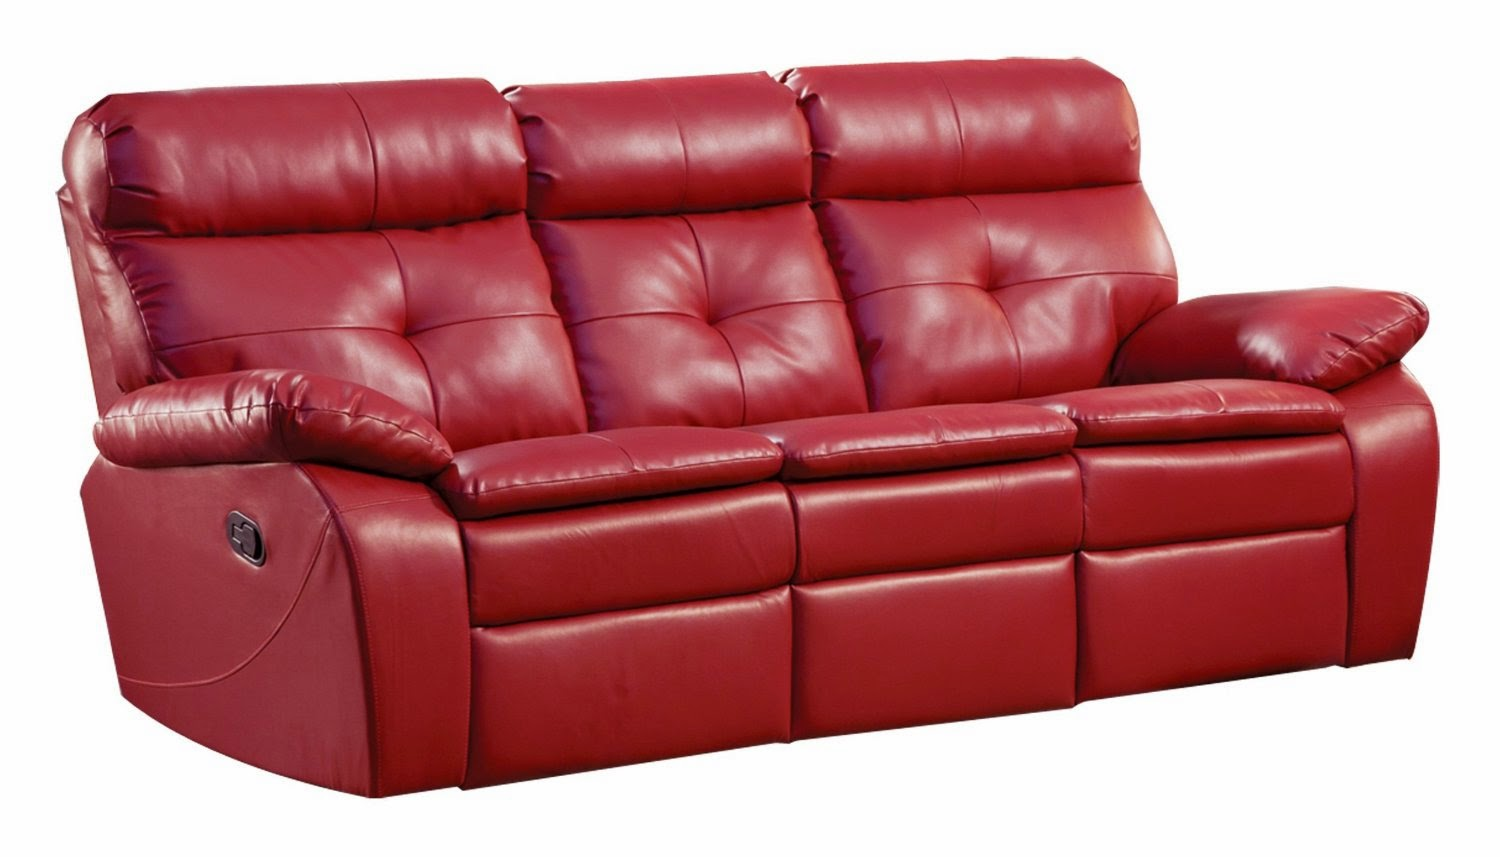 Top Seller Reclining And Recliner Sofa Loveseat Red Leather Dual Reclining Sofa